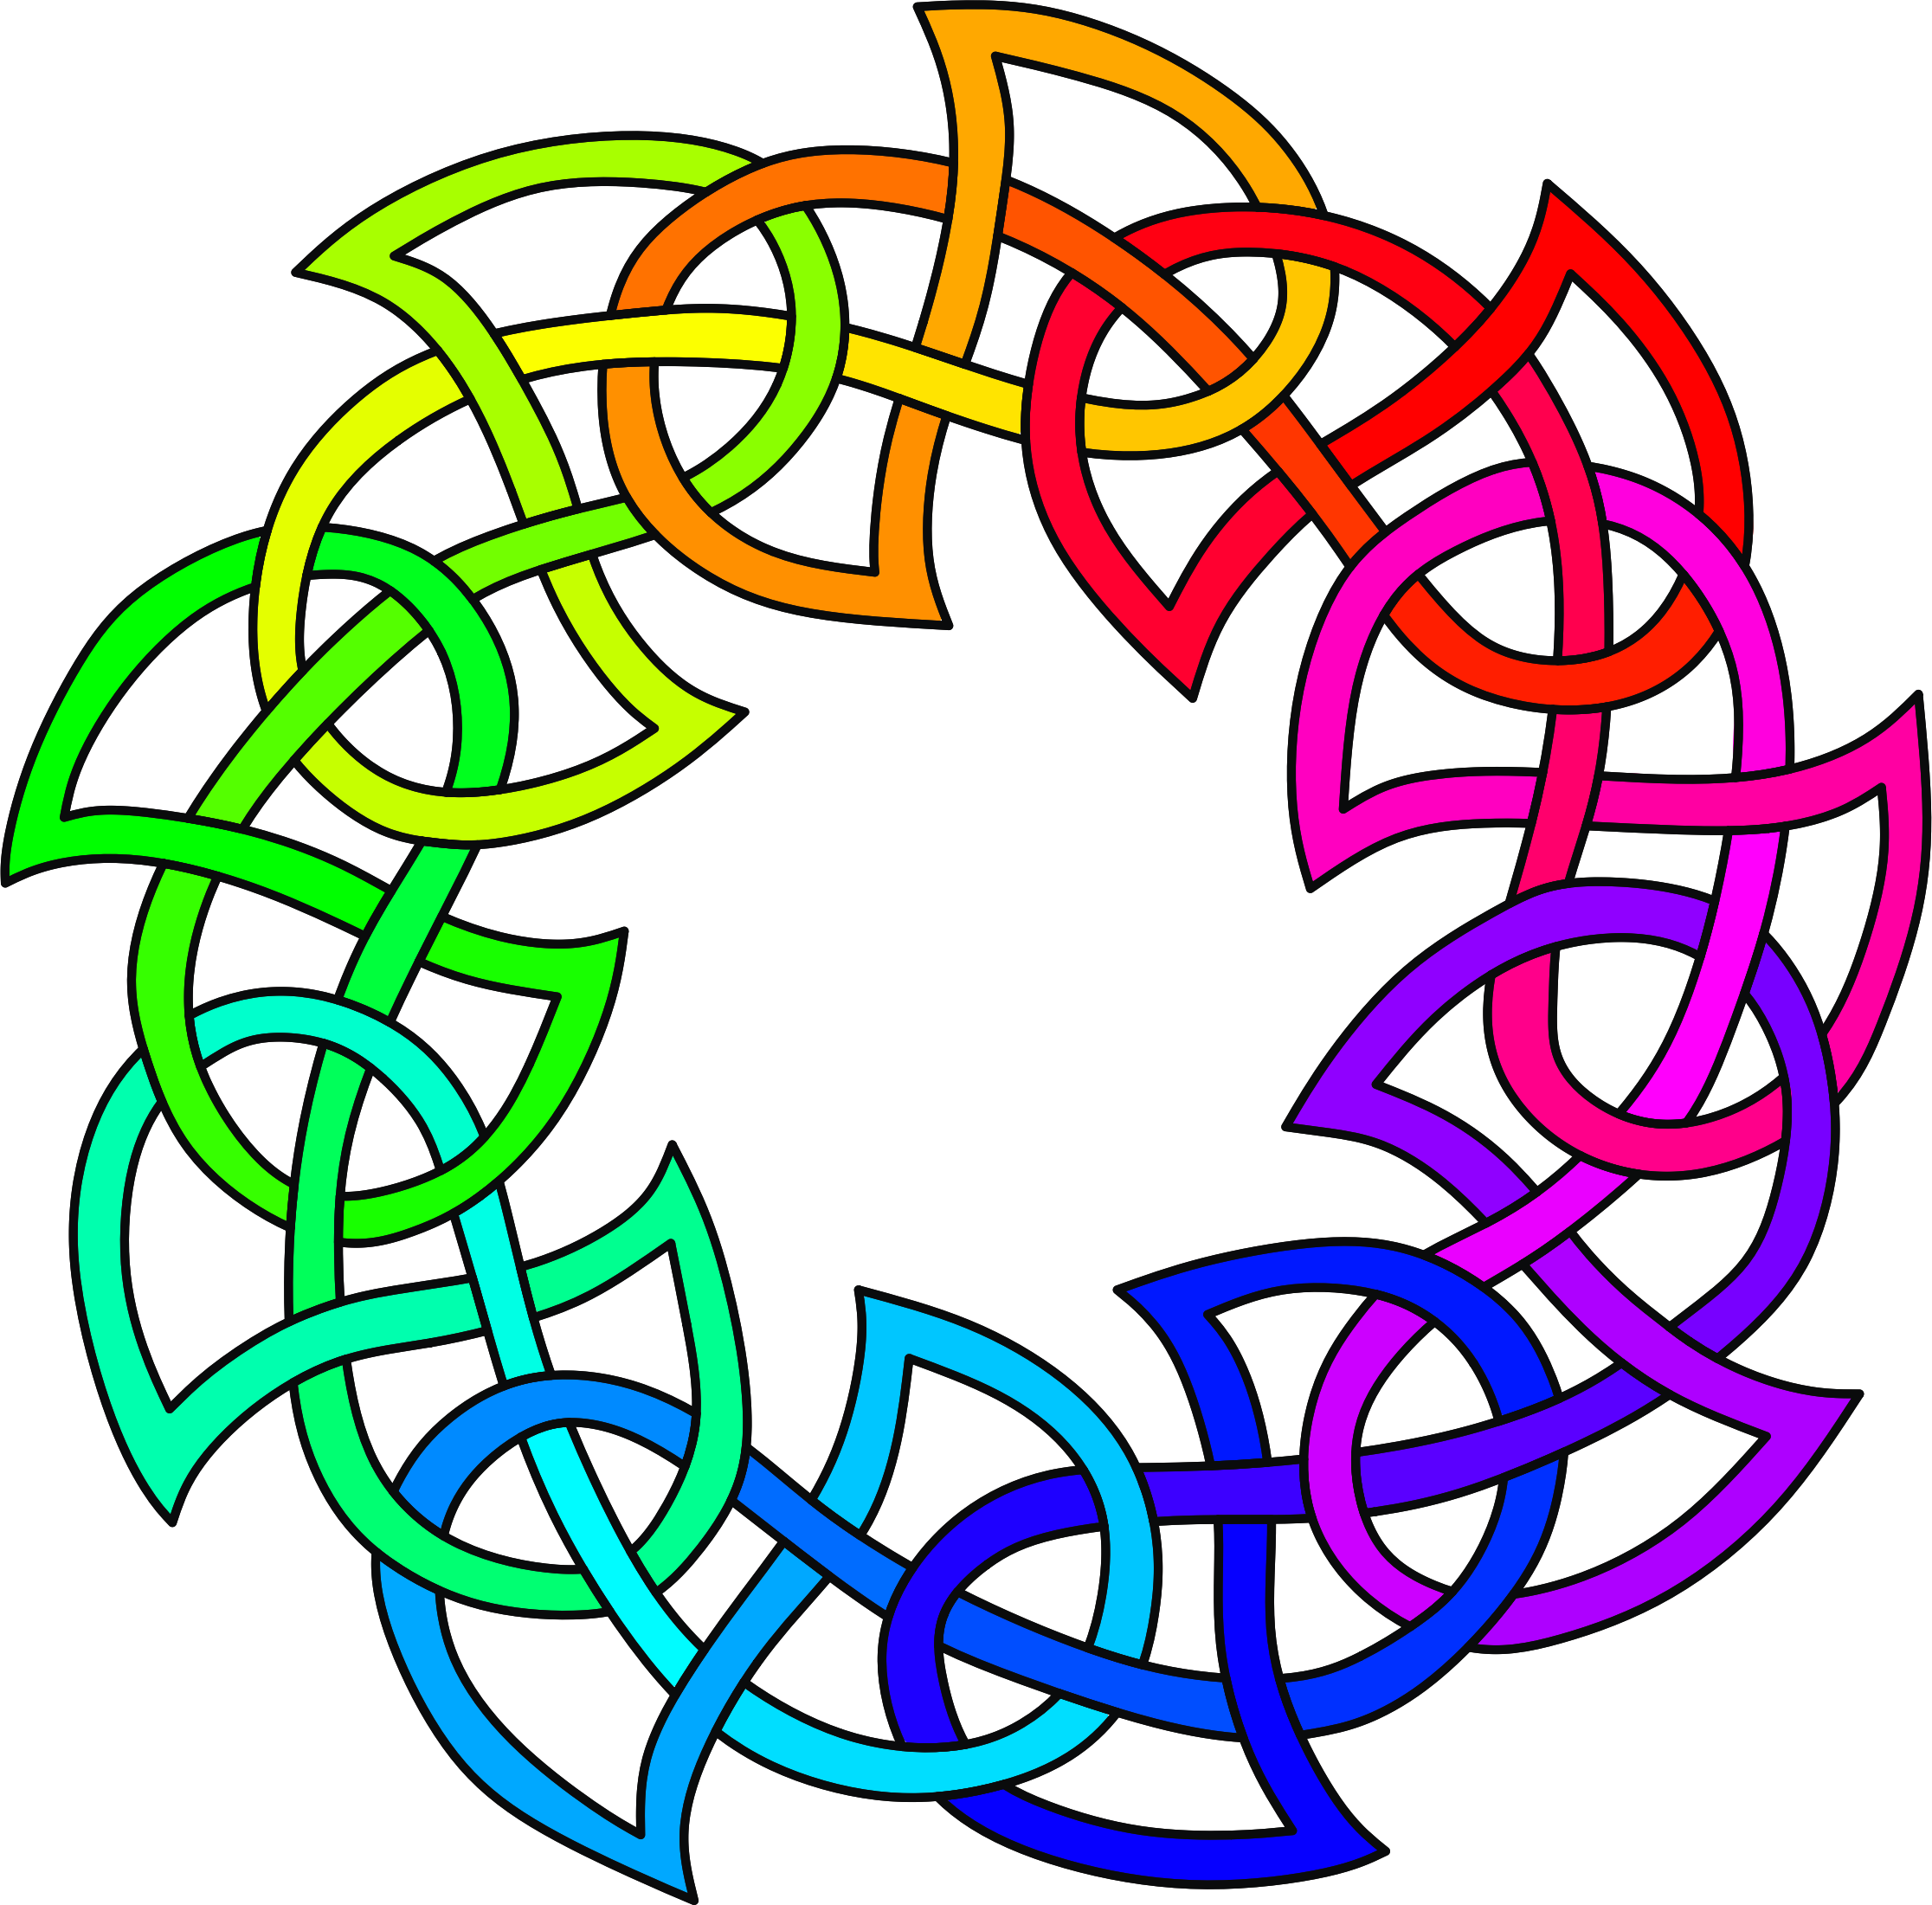 Celtic knot 2 (colour) by Firkin